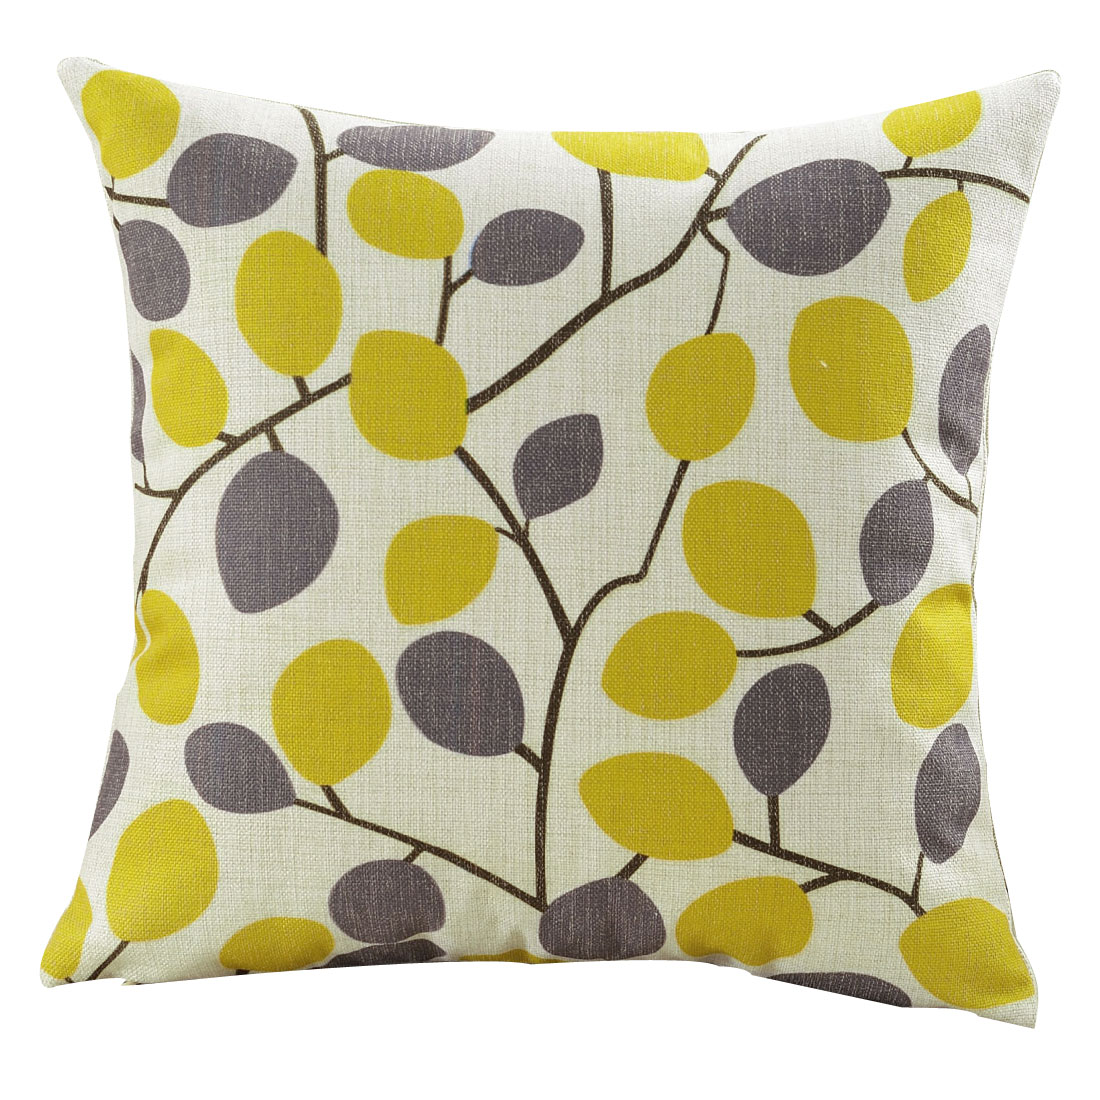 Home Sofa Cotton Linen Pop Geometric Pattern Waist Throw Cushion Pillow Cover